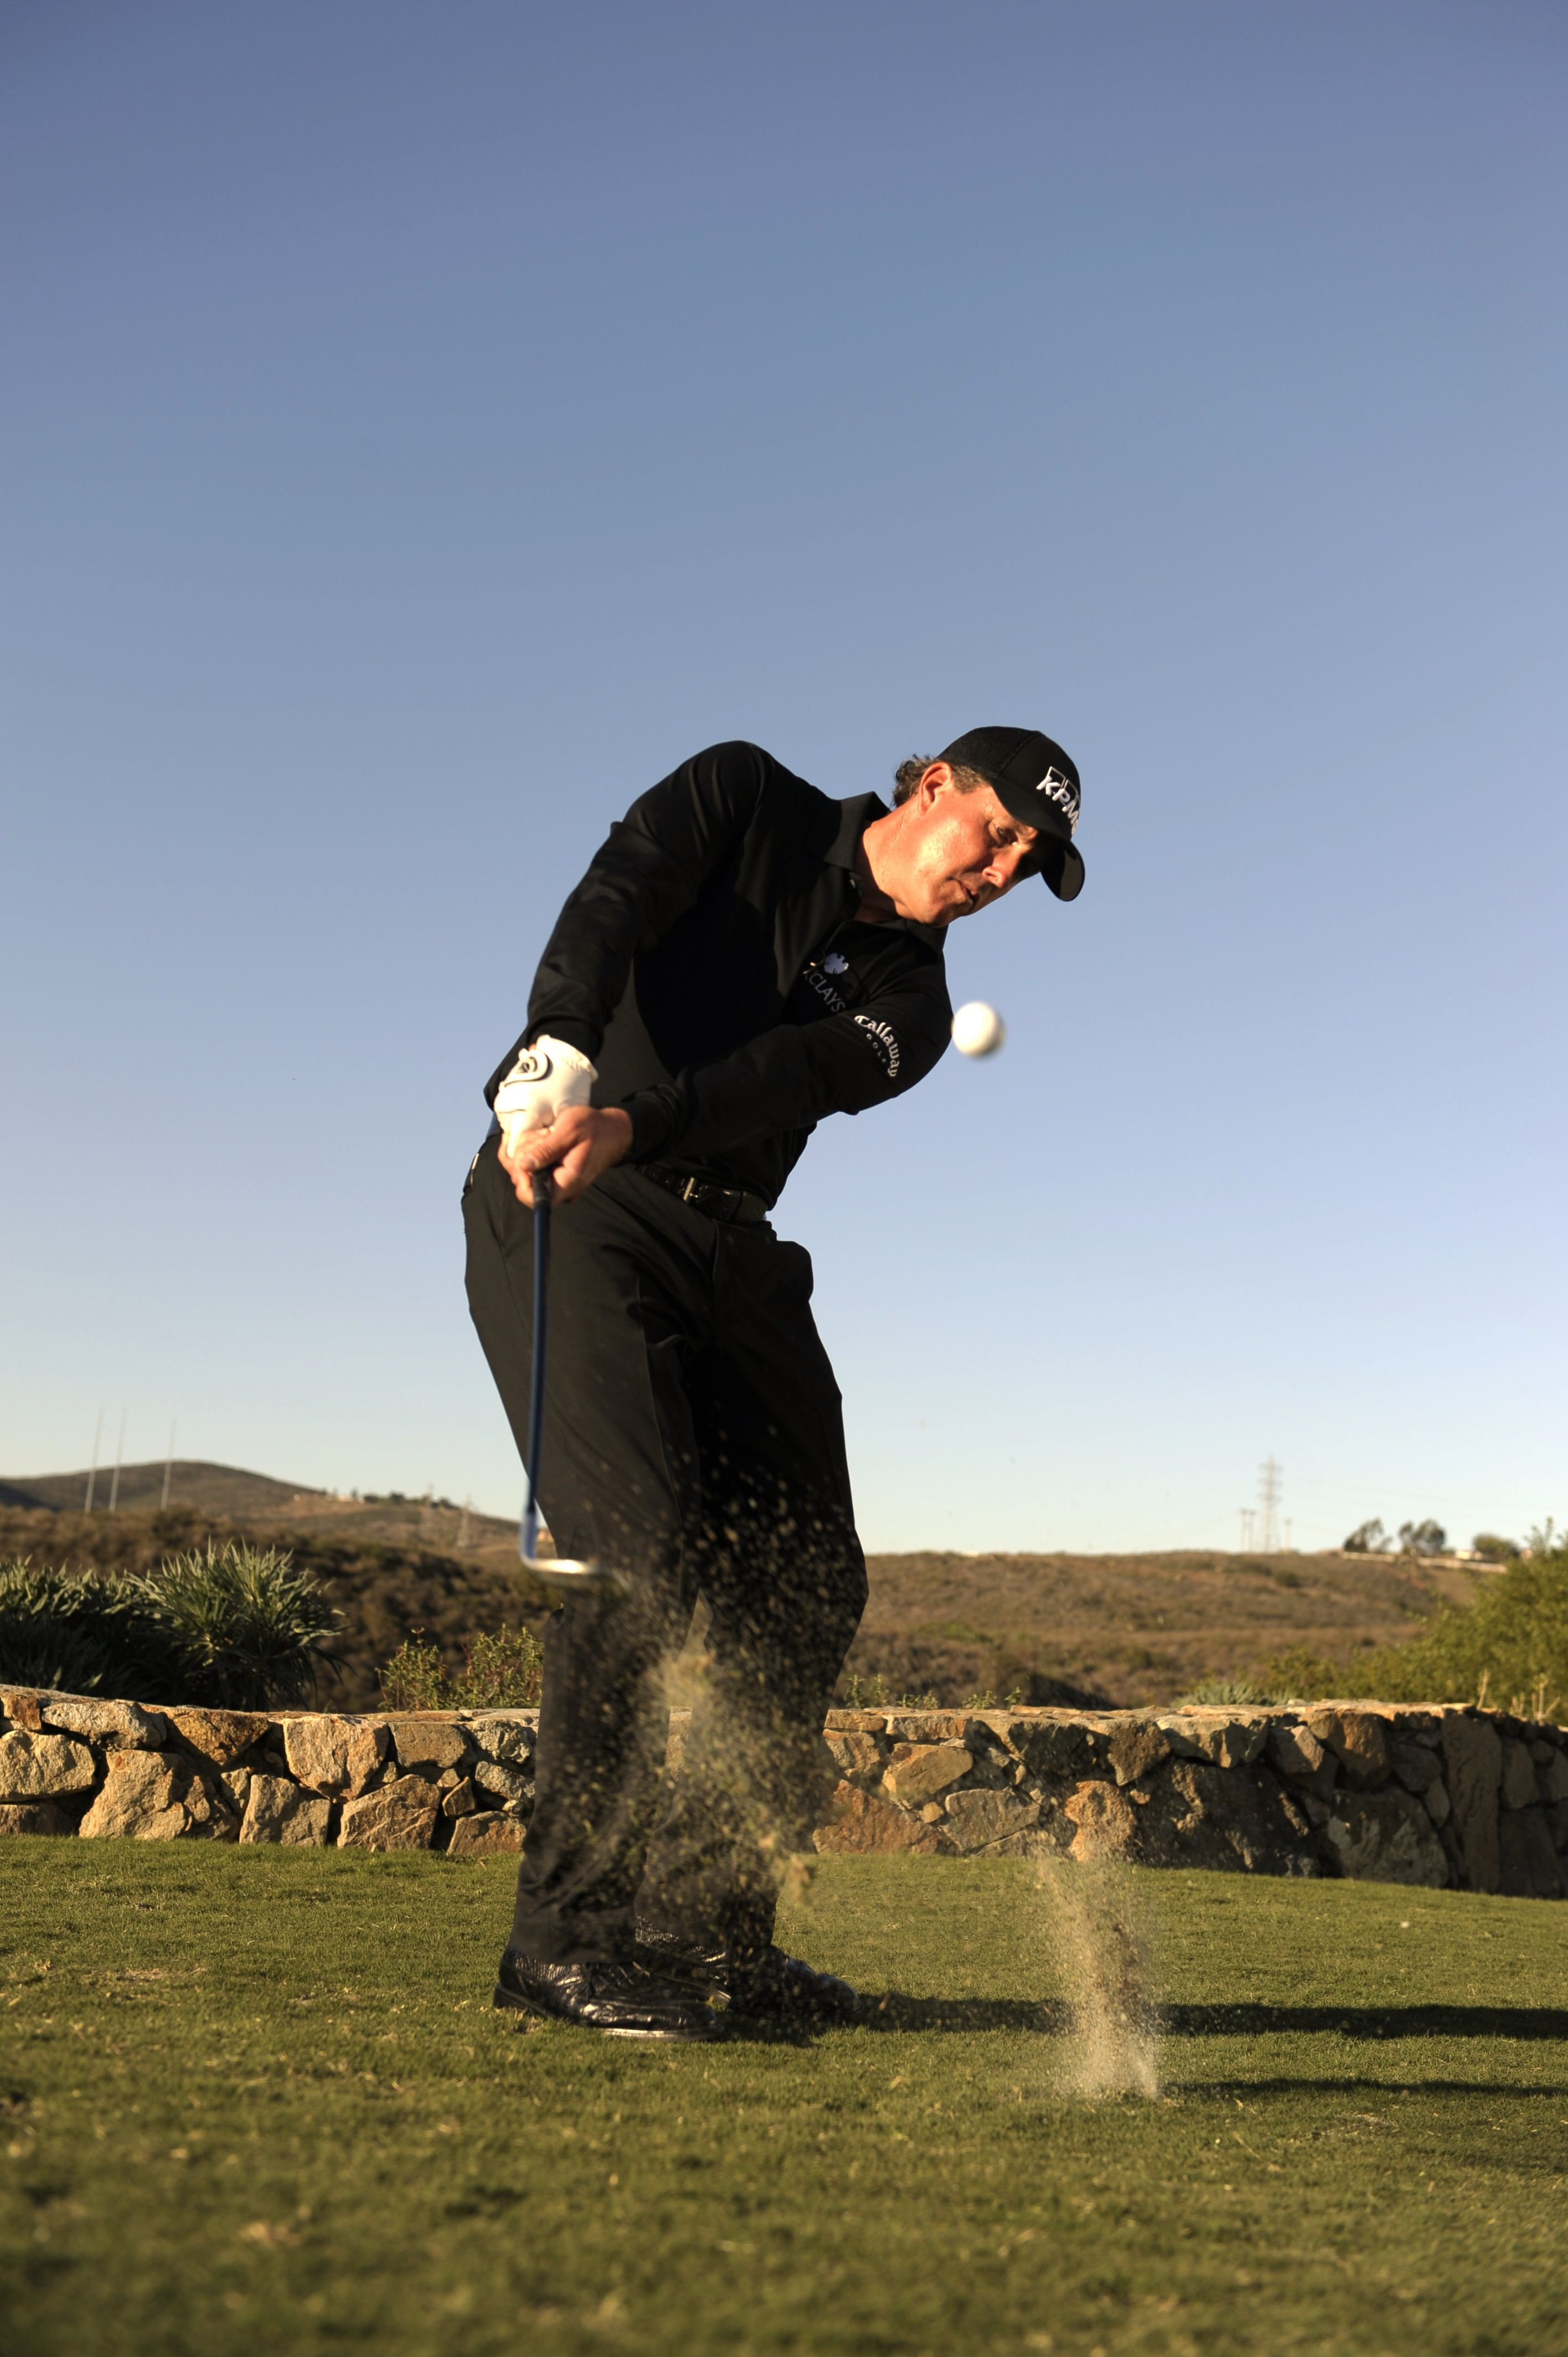 Phil Mickelson, the best short game player to ever play